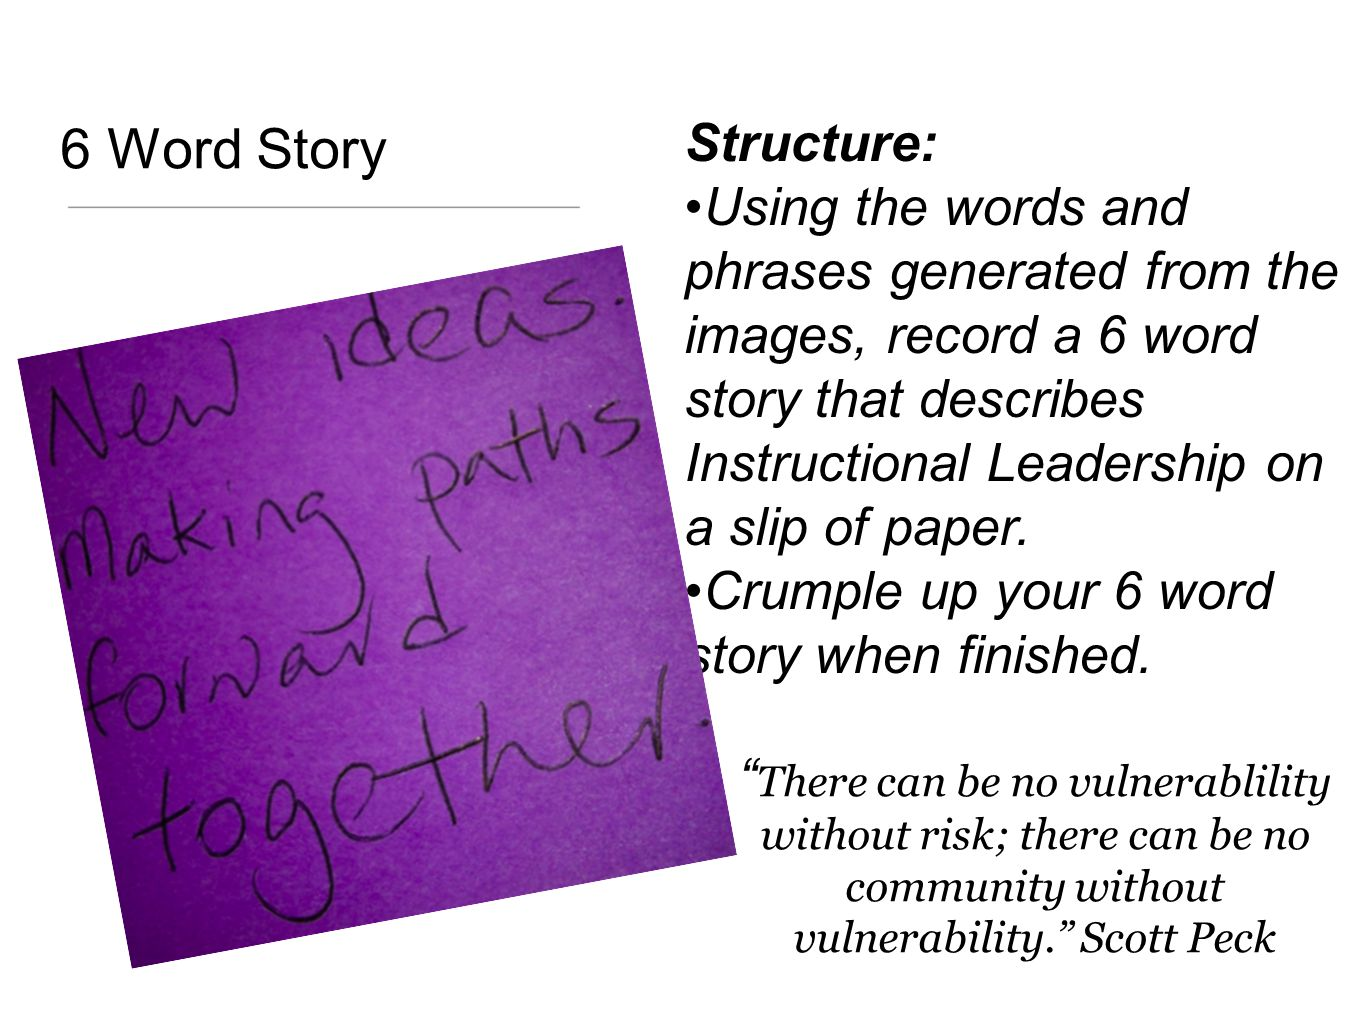 6 Word Story Structure: Using the words and phrases generated from the images, record a 6 word story that describes Instructional Leadership on a slip of paper.